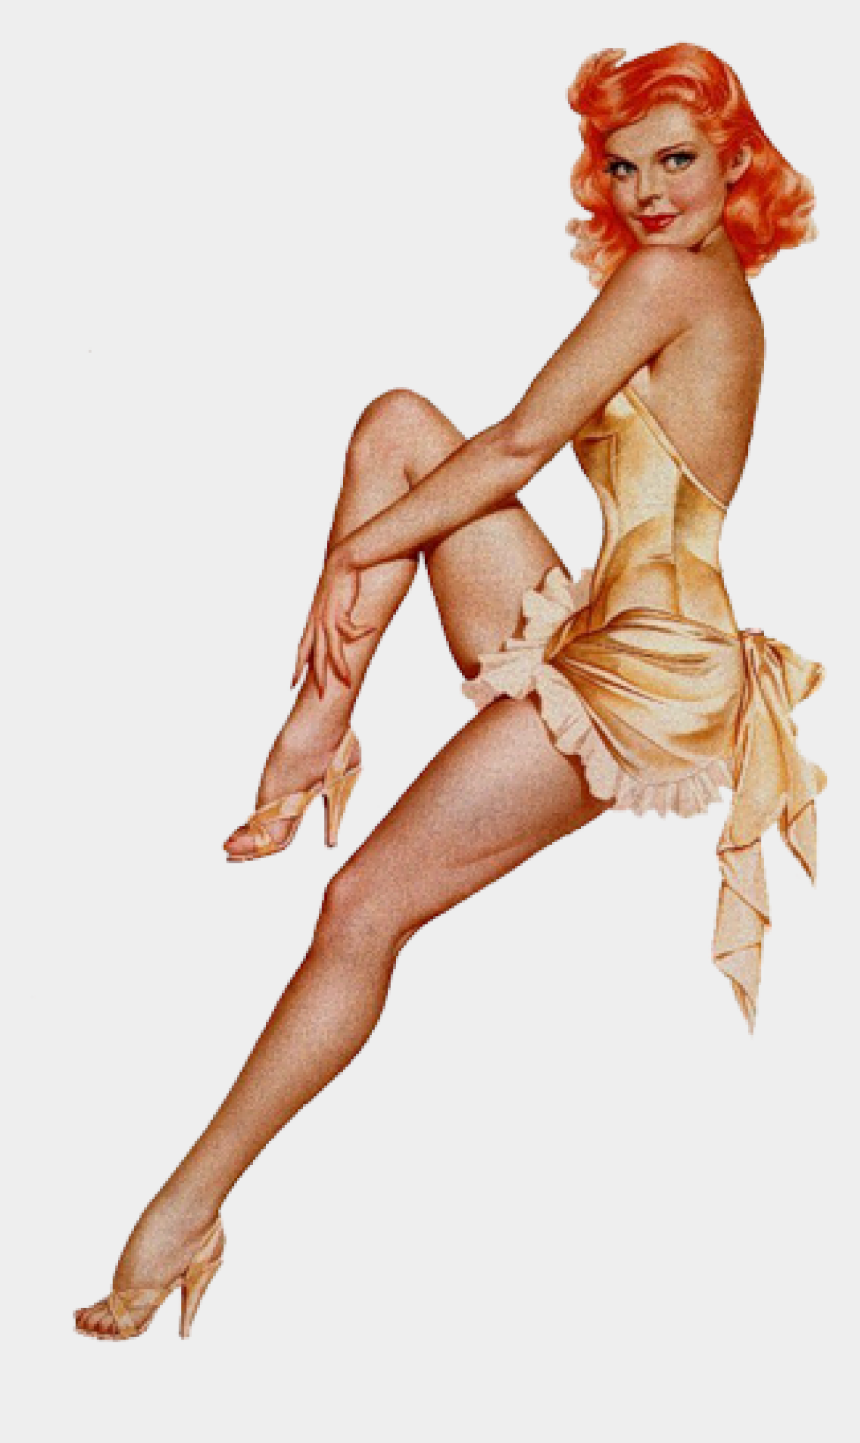 free pin up girl clipart, Cartoons - Pin Up, Png Format With Transparent Background - Pin Up Girls